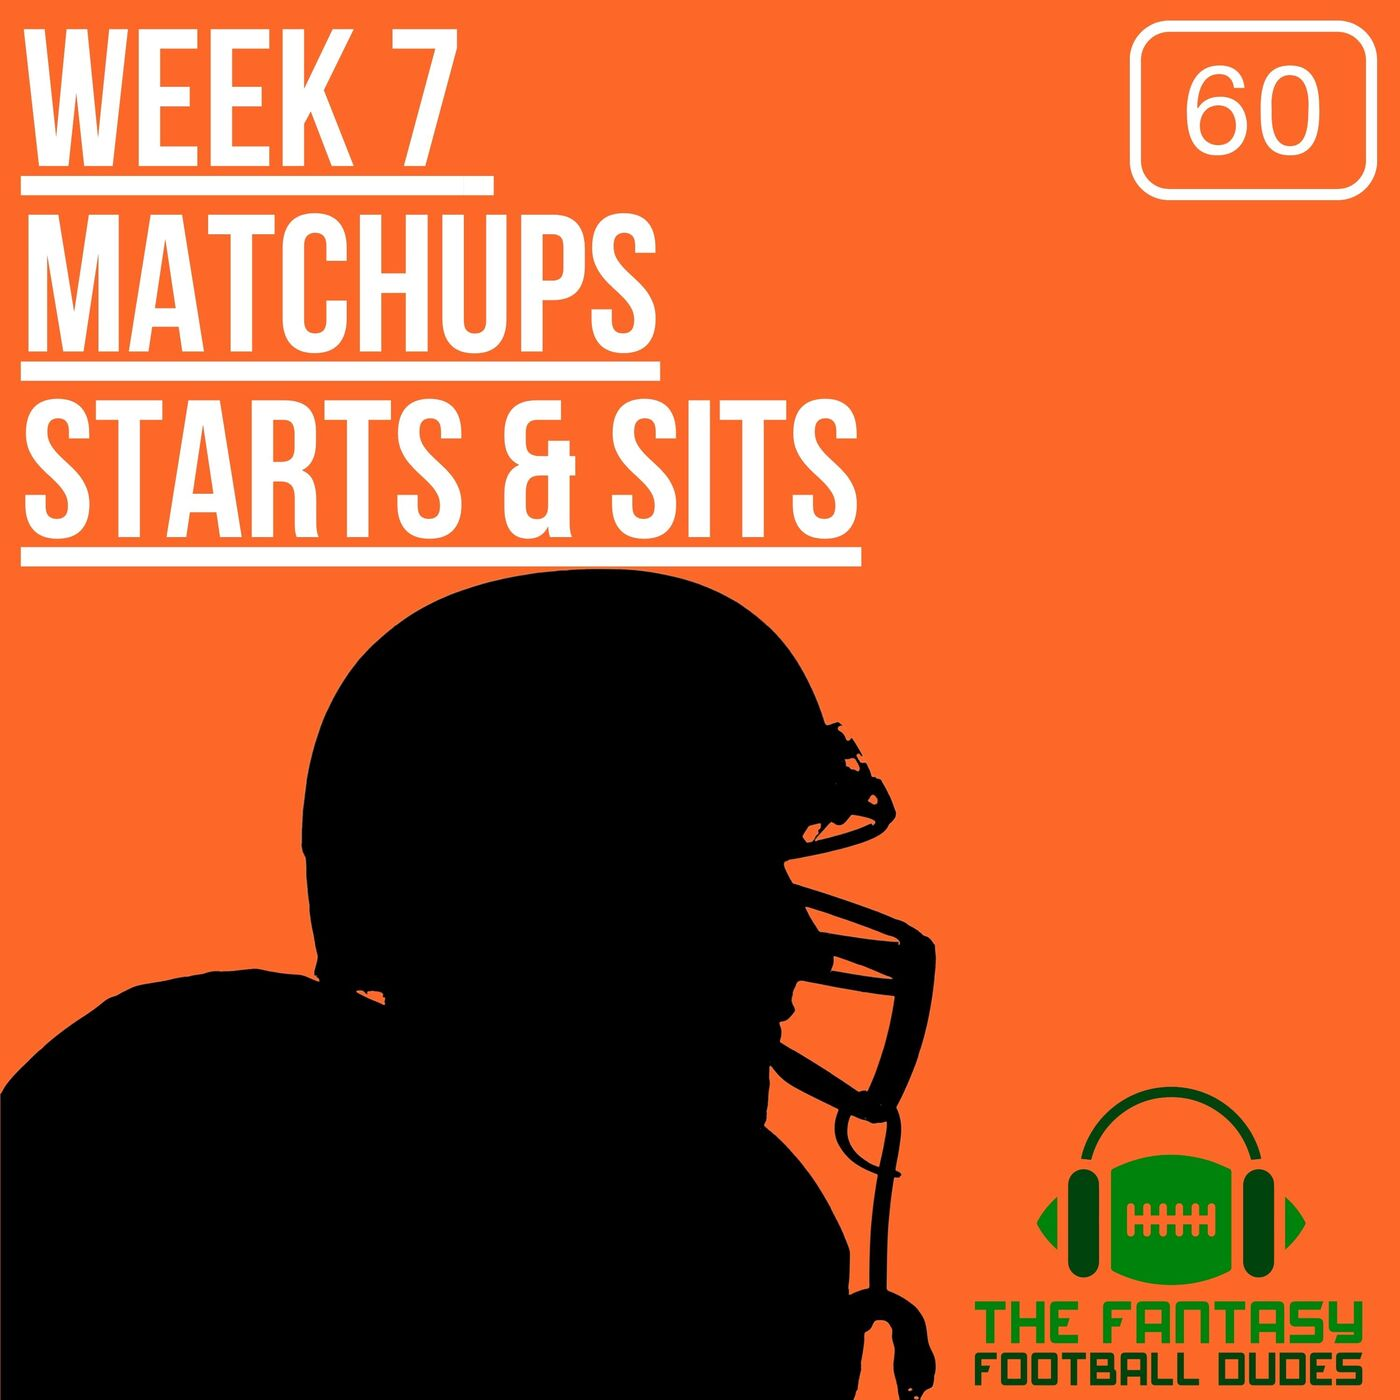 Week 7 Preview + Starts & Sits + Predictions